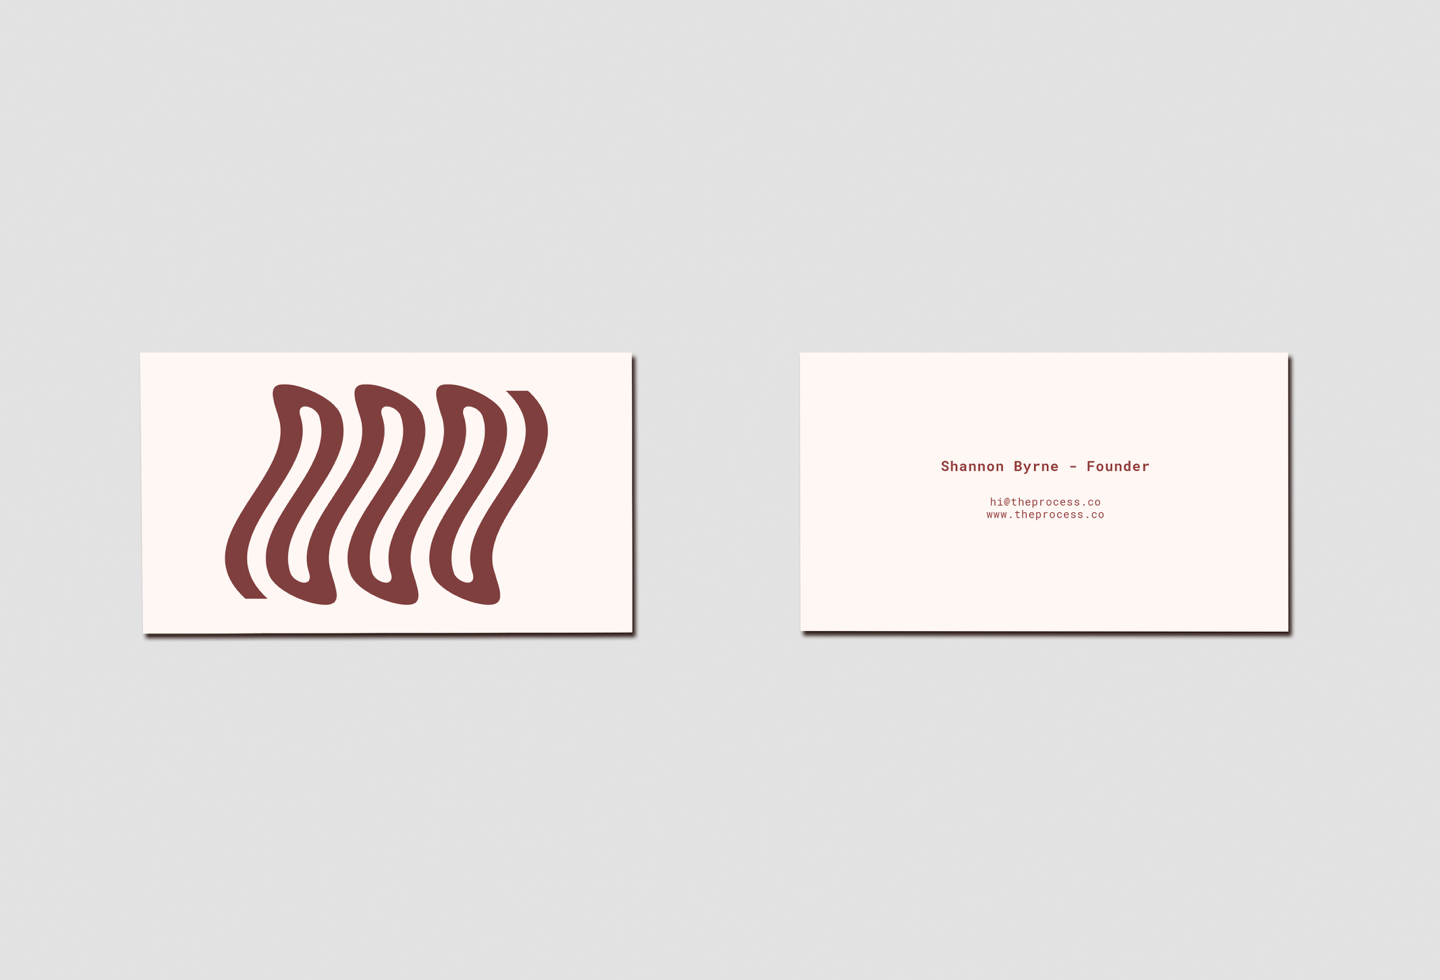 theprocess-businesscards